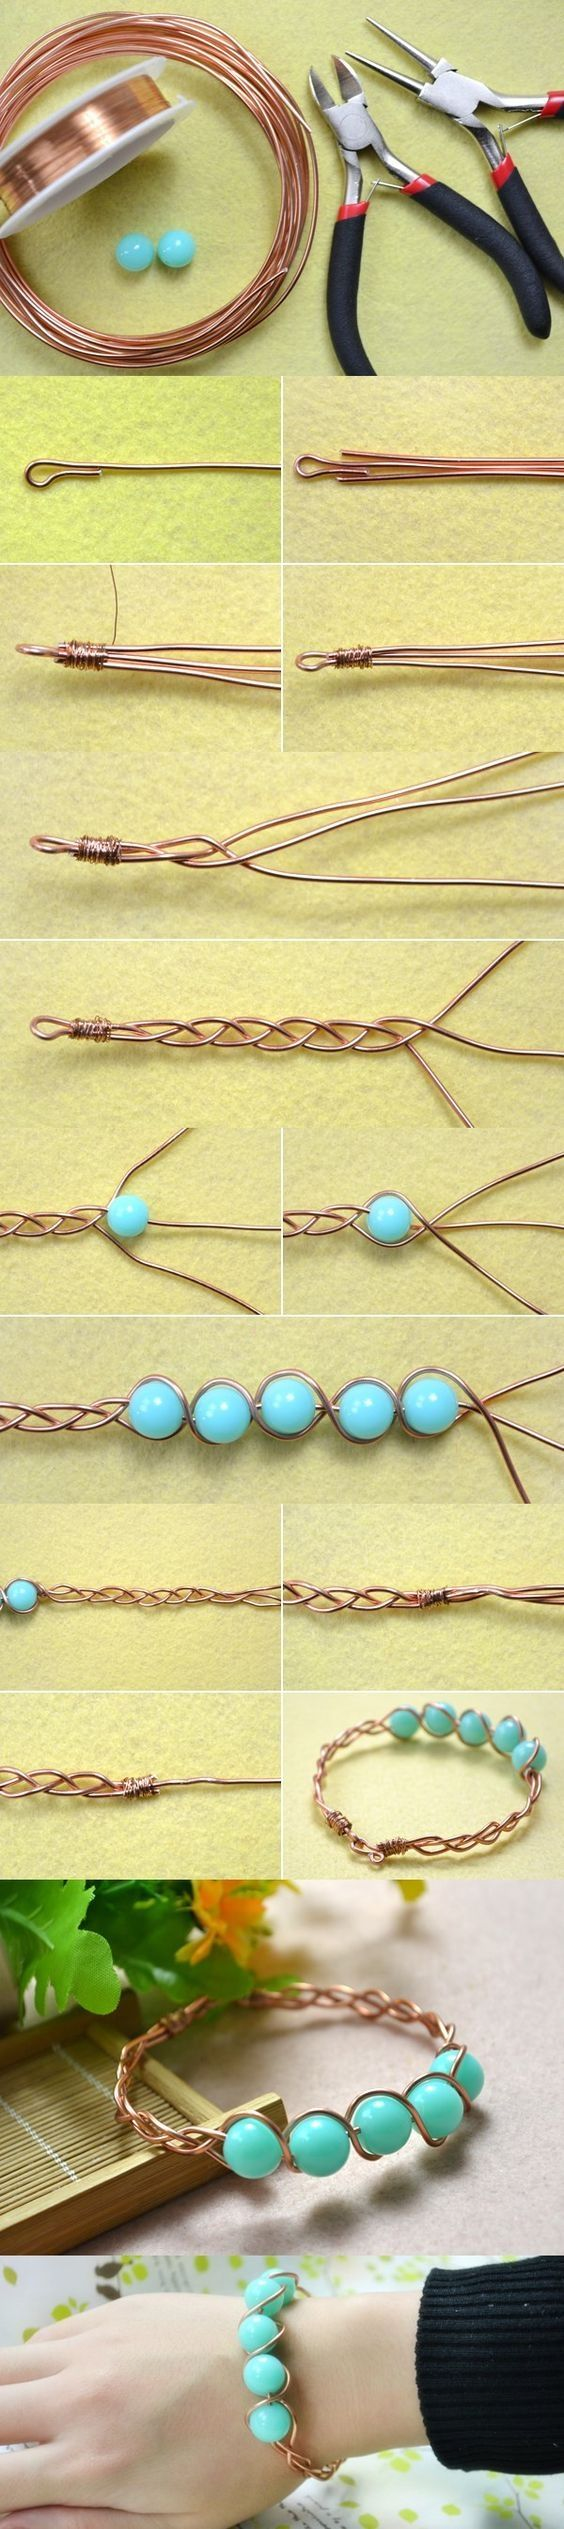 Tutorial on How to Make a Braided Wire Bangle Bracelet with Cyan Acrylic Beads from LC.Pandahall.com | Jewelry Making Tutorials & Tips 2 | Pinterest by Jersica